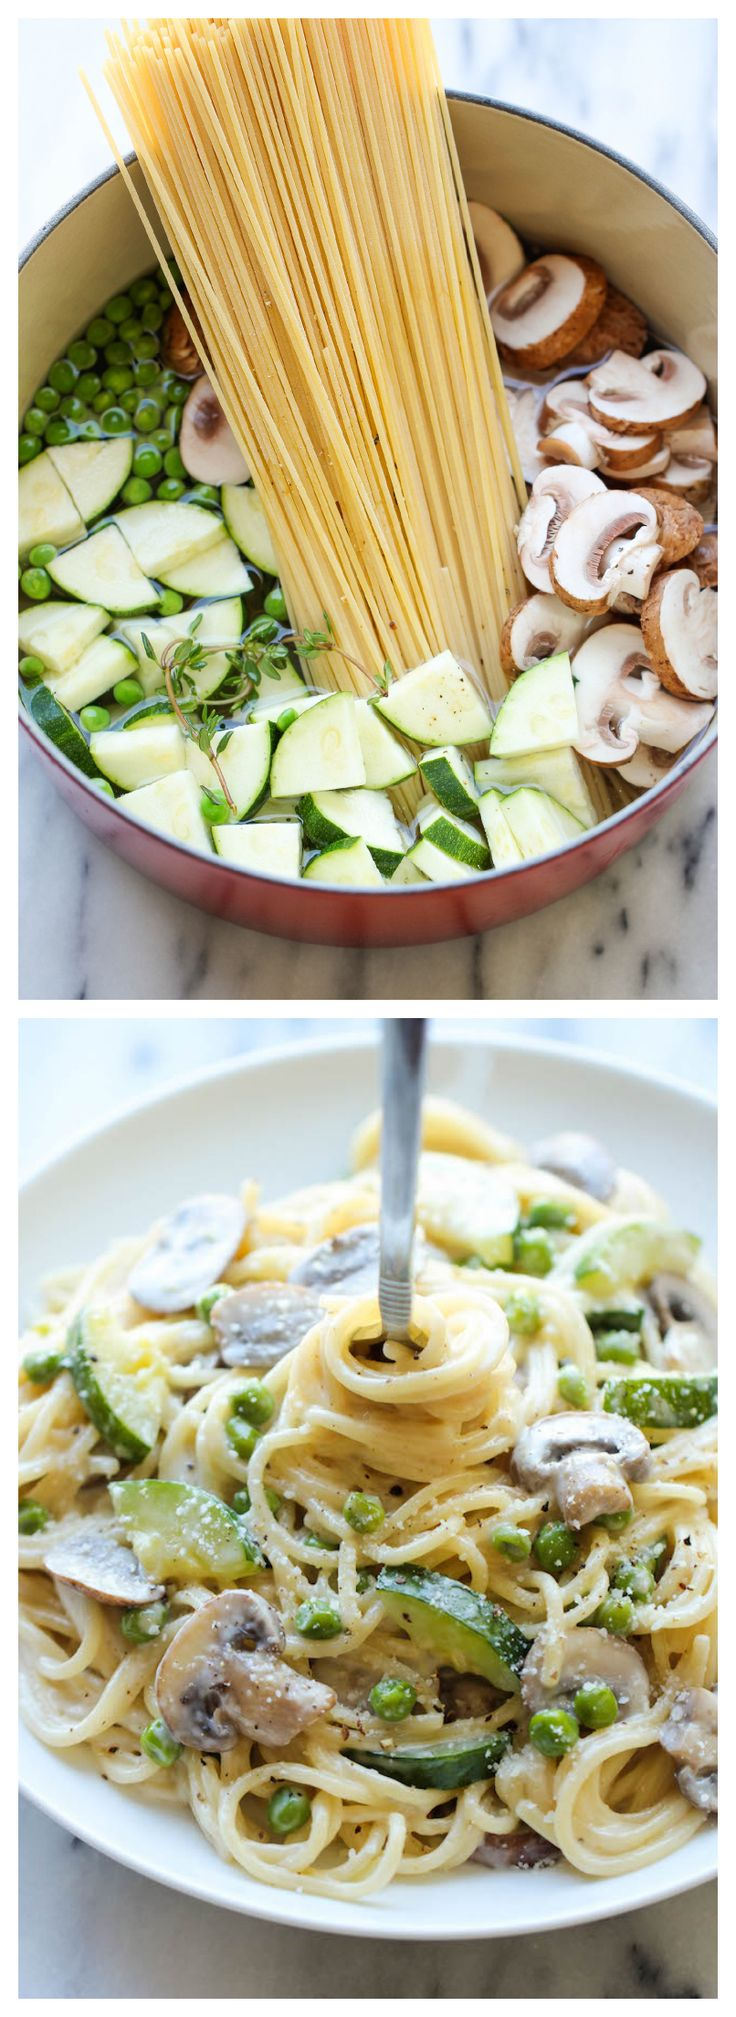 One Pot Zucchini Mushroom Pasta - A creamy, hearty pasta dish that you can make in just 20 min. Even the pasta gets cooked in the pot! #ChooseDreams